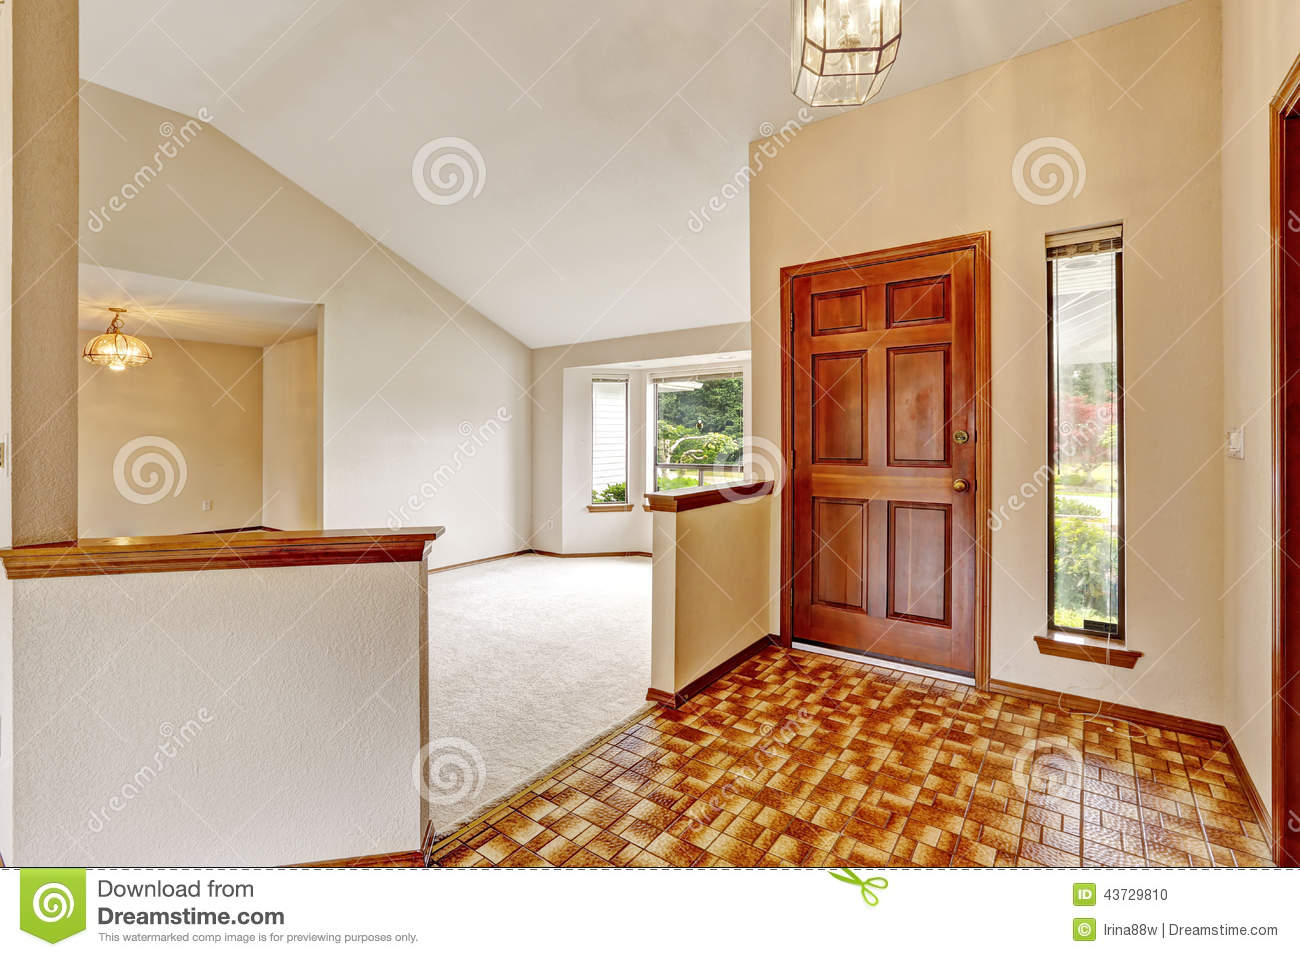 Image Result For Cleaning Linoleum Floors